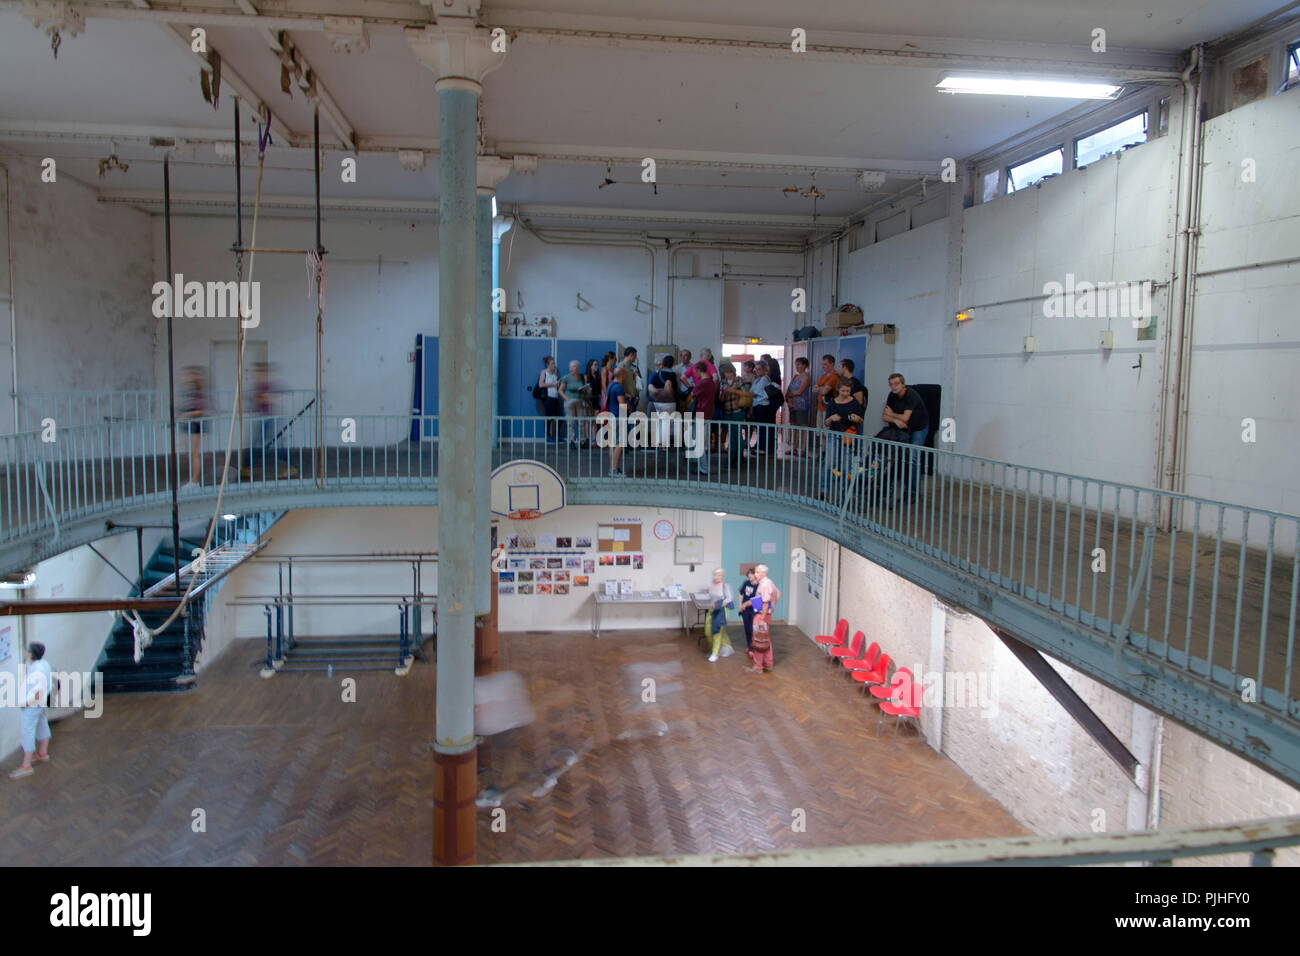 France, Paris 9th arrondissement, 14 Trevise street, YMCA, world oldest basketball playground (1893). 2014 European Heritage Days. - Stock Image